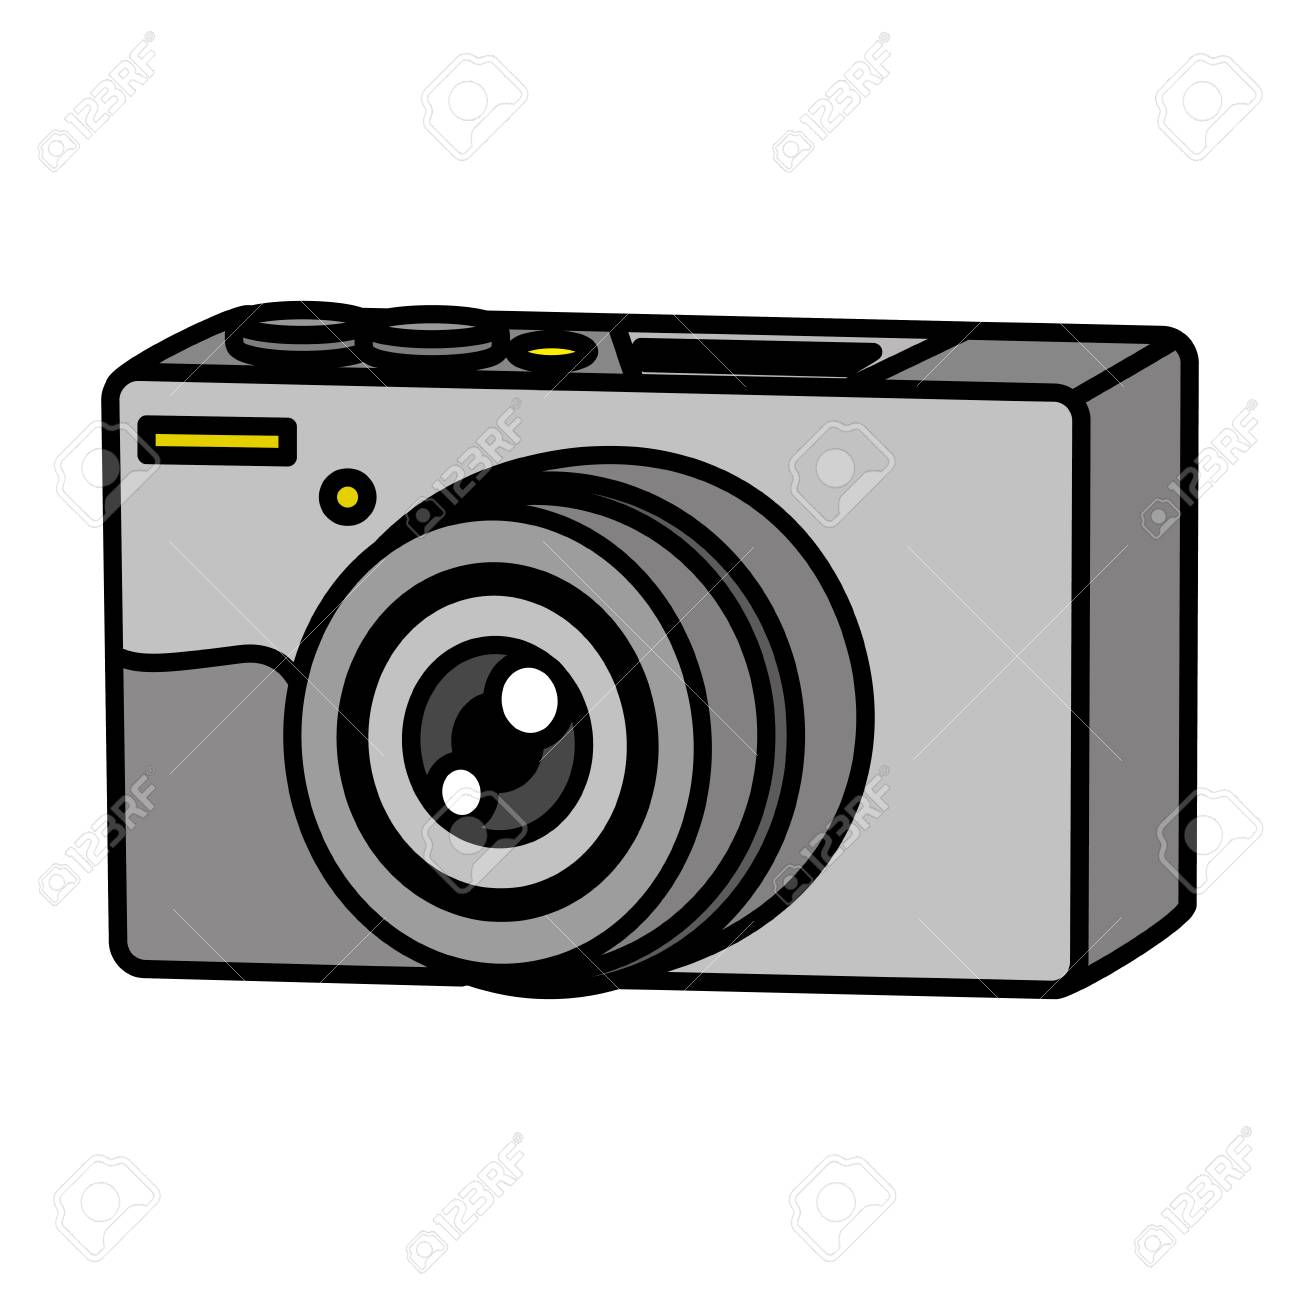 Color Professional Digital Camera Technology Object Vector Illustration Royalty Free Cliparts Vectors And Stock Illustration Image 111770458